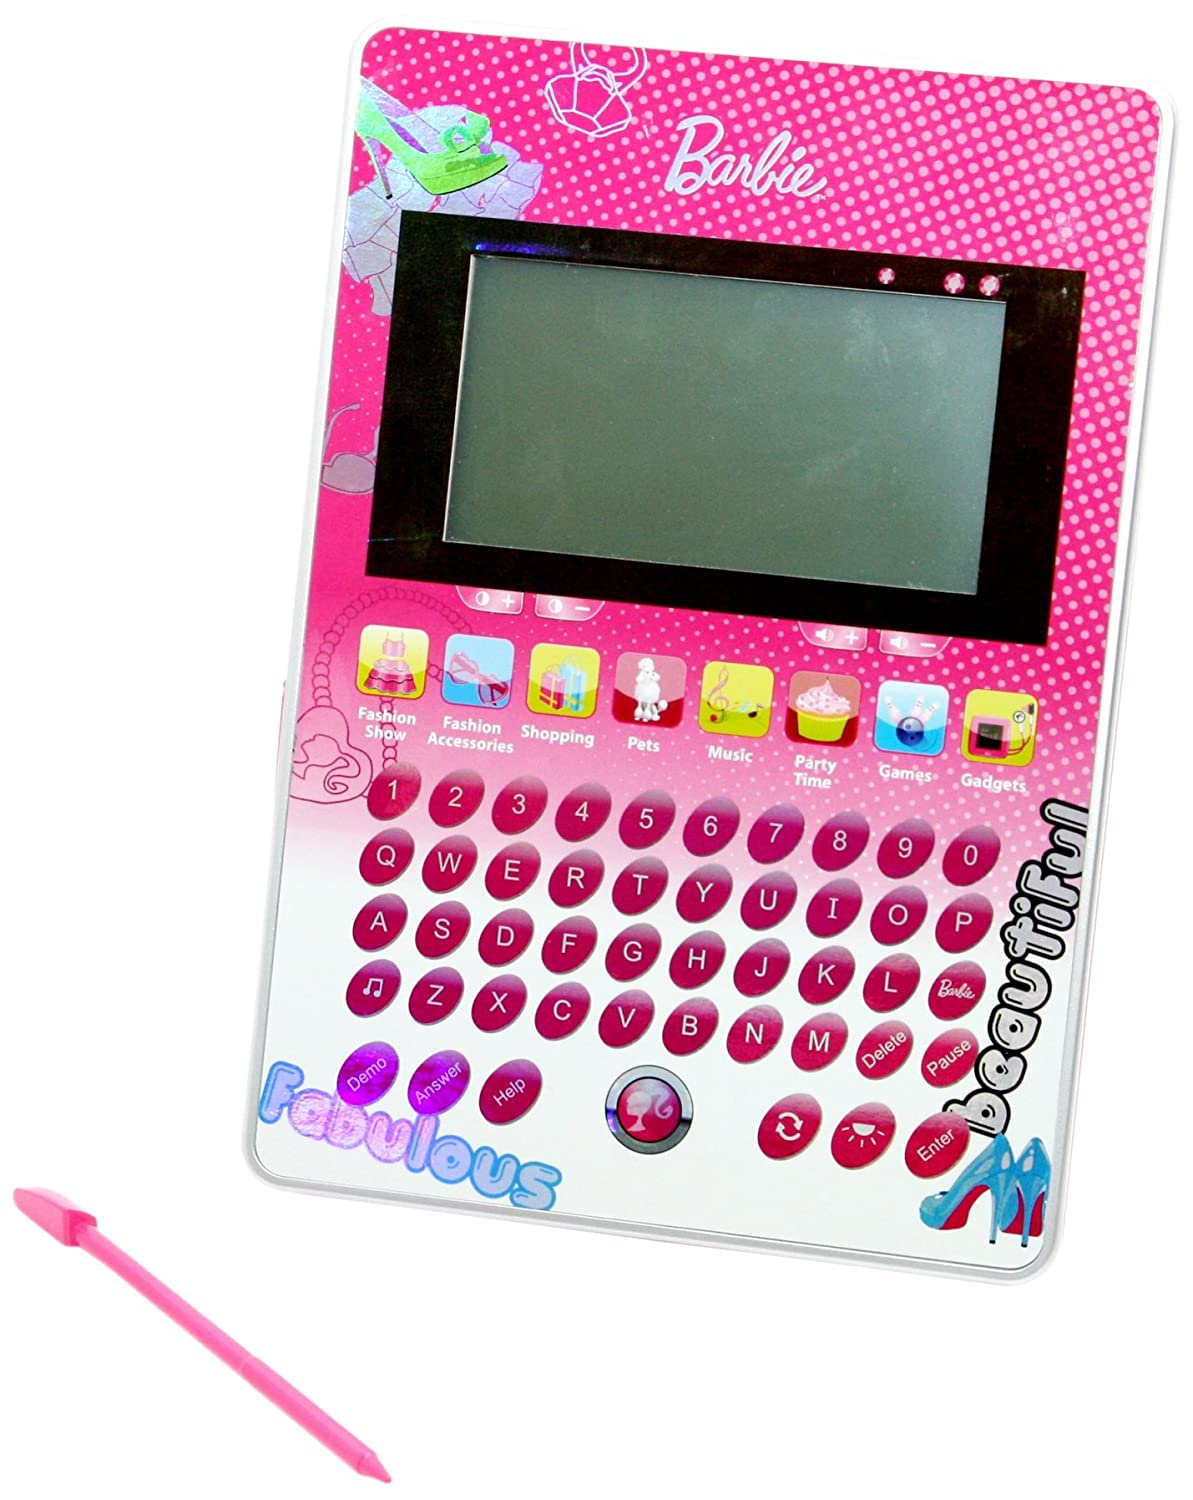 Oregon Scientific BI 68-11 - Barbie Fashion Tablet mit Tasche